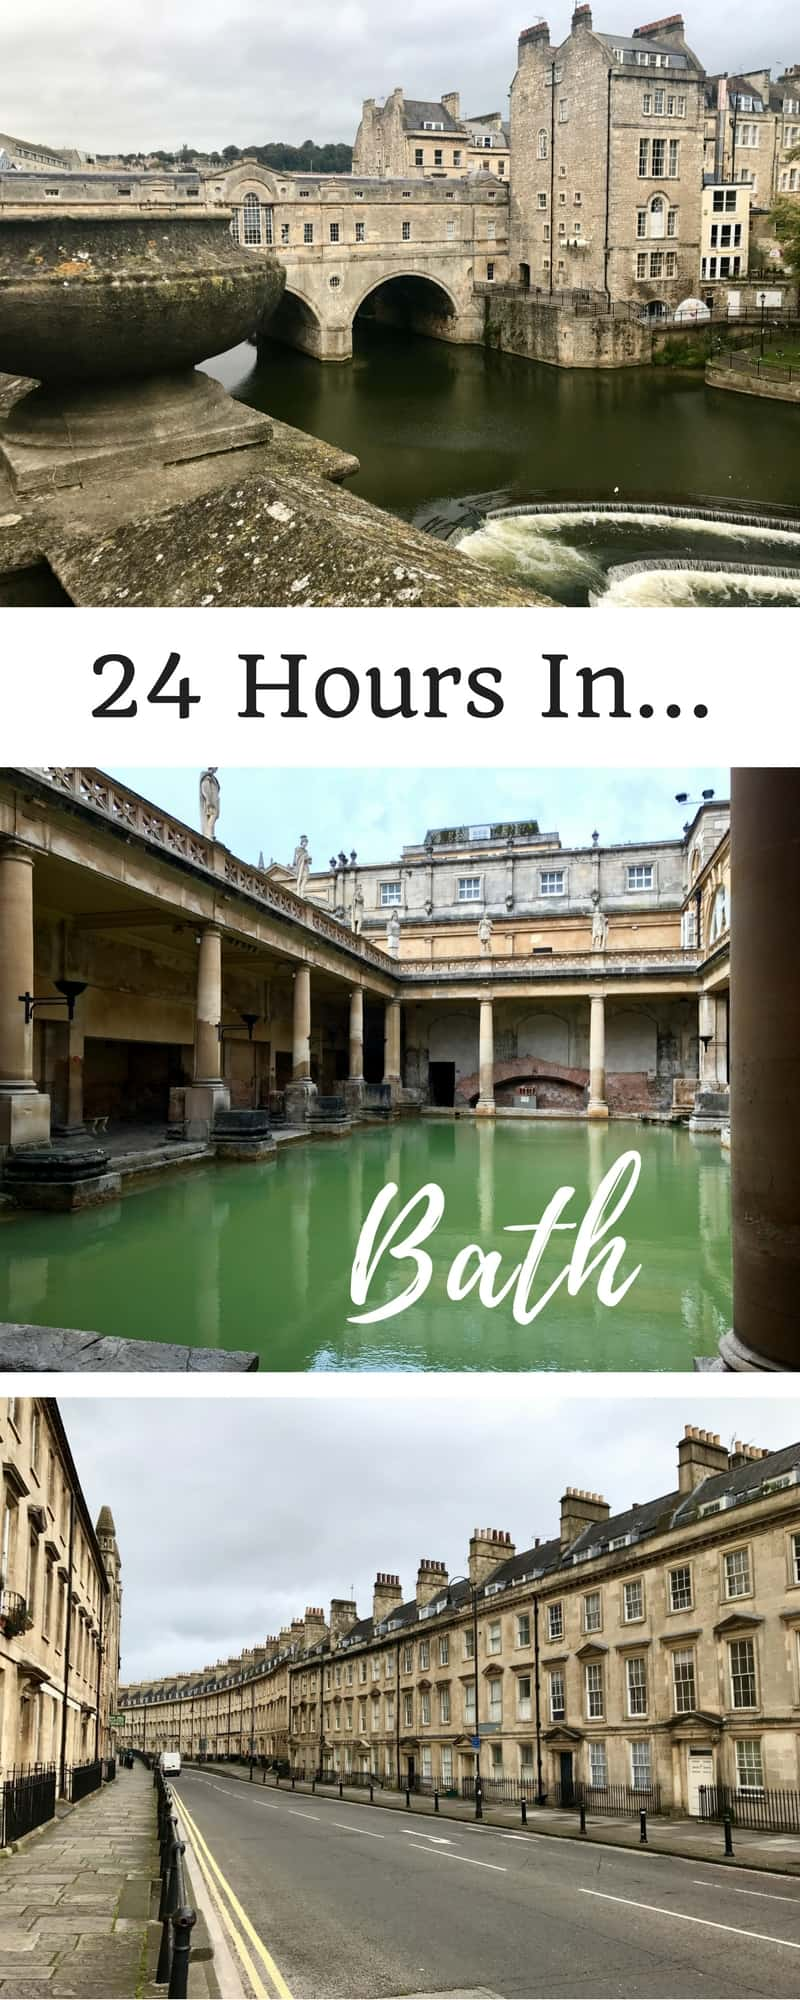 What to do in Bath, especially with a short time | Itinerary ideas for Bath, England UK...it's such a compact little city and there's a ton of fun history, architecture, and literary references (Jane Austen!) | things to do in Bath UK #bath #england #romanbaths #ukroadtrip